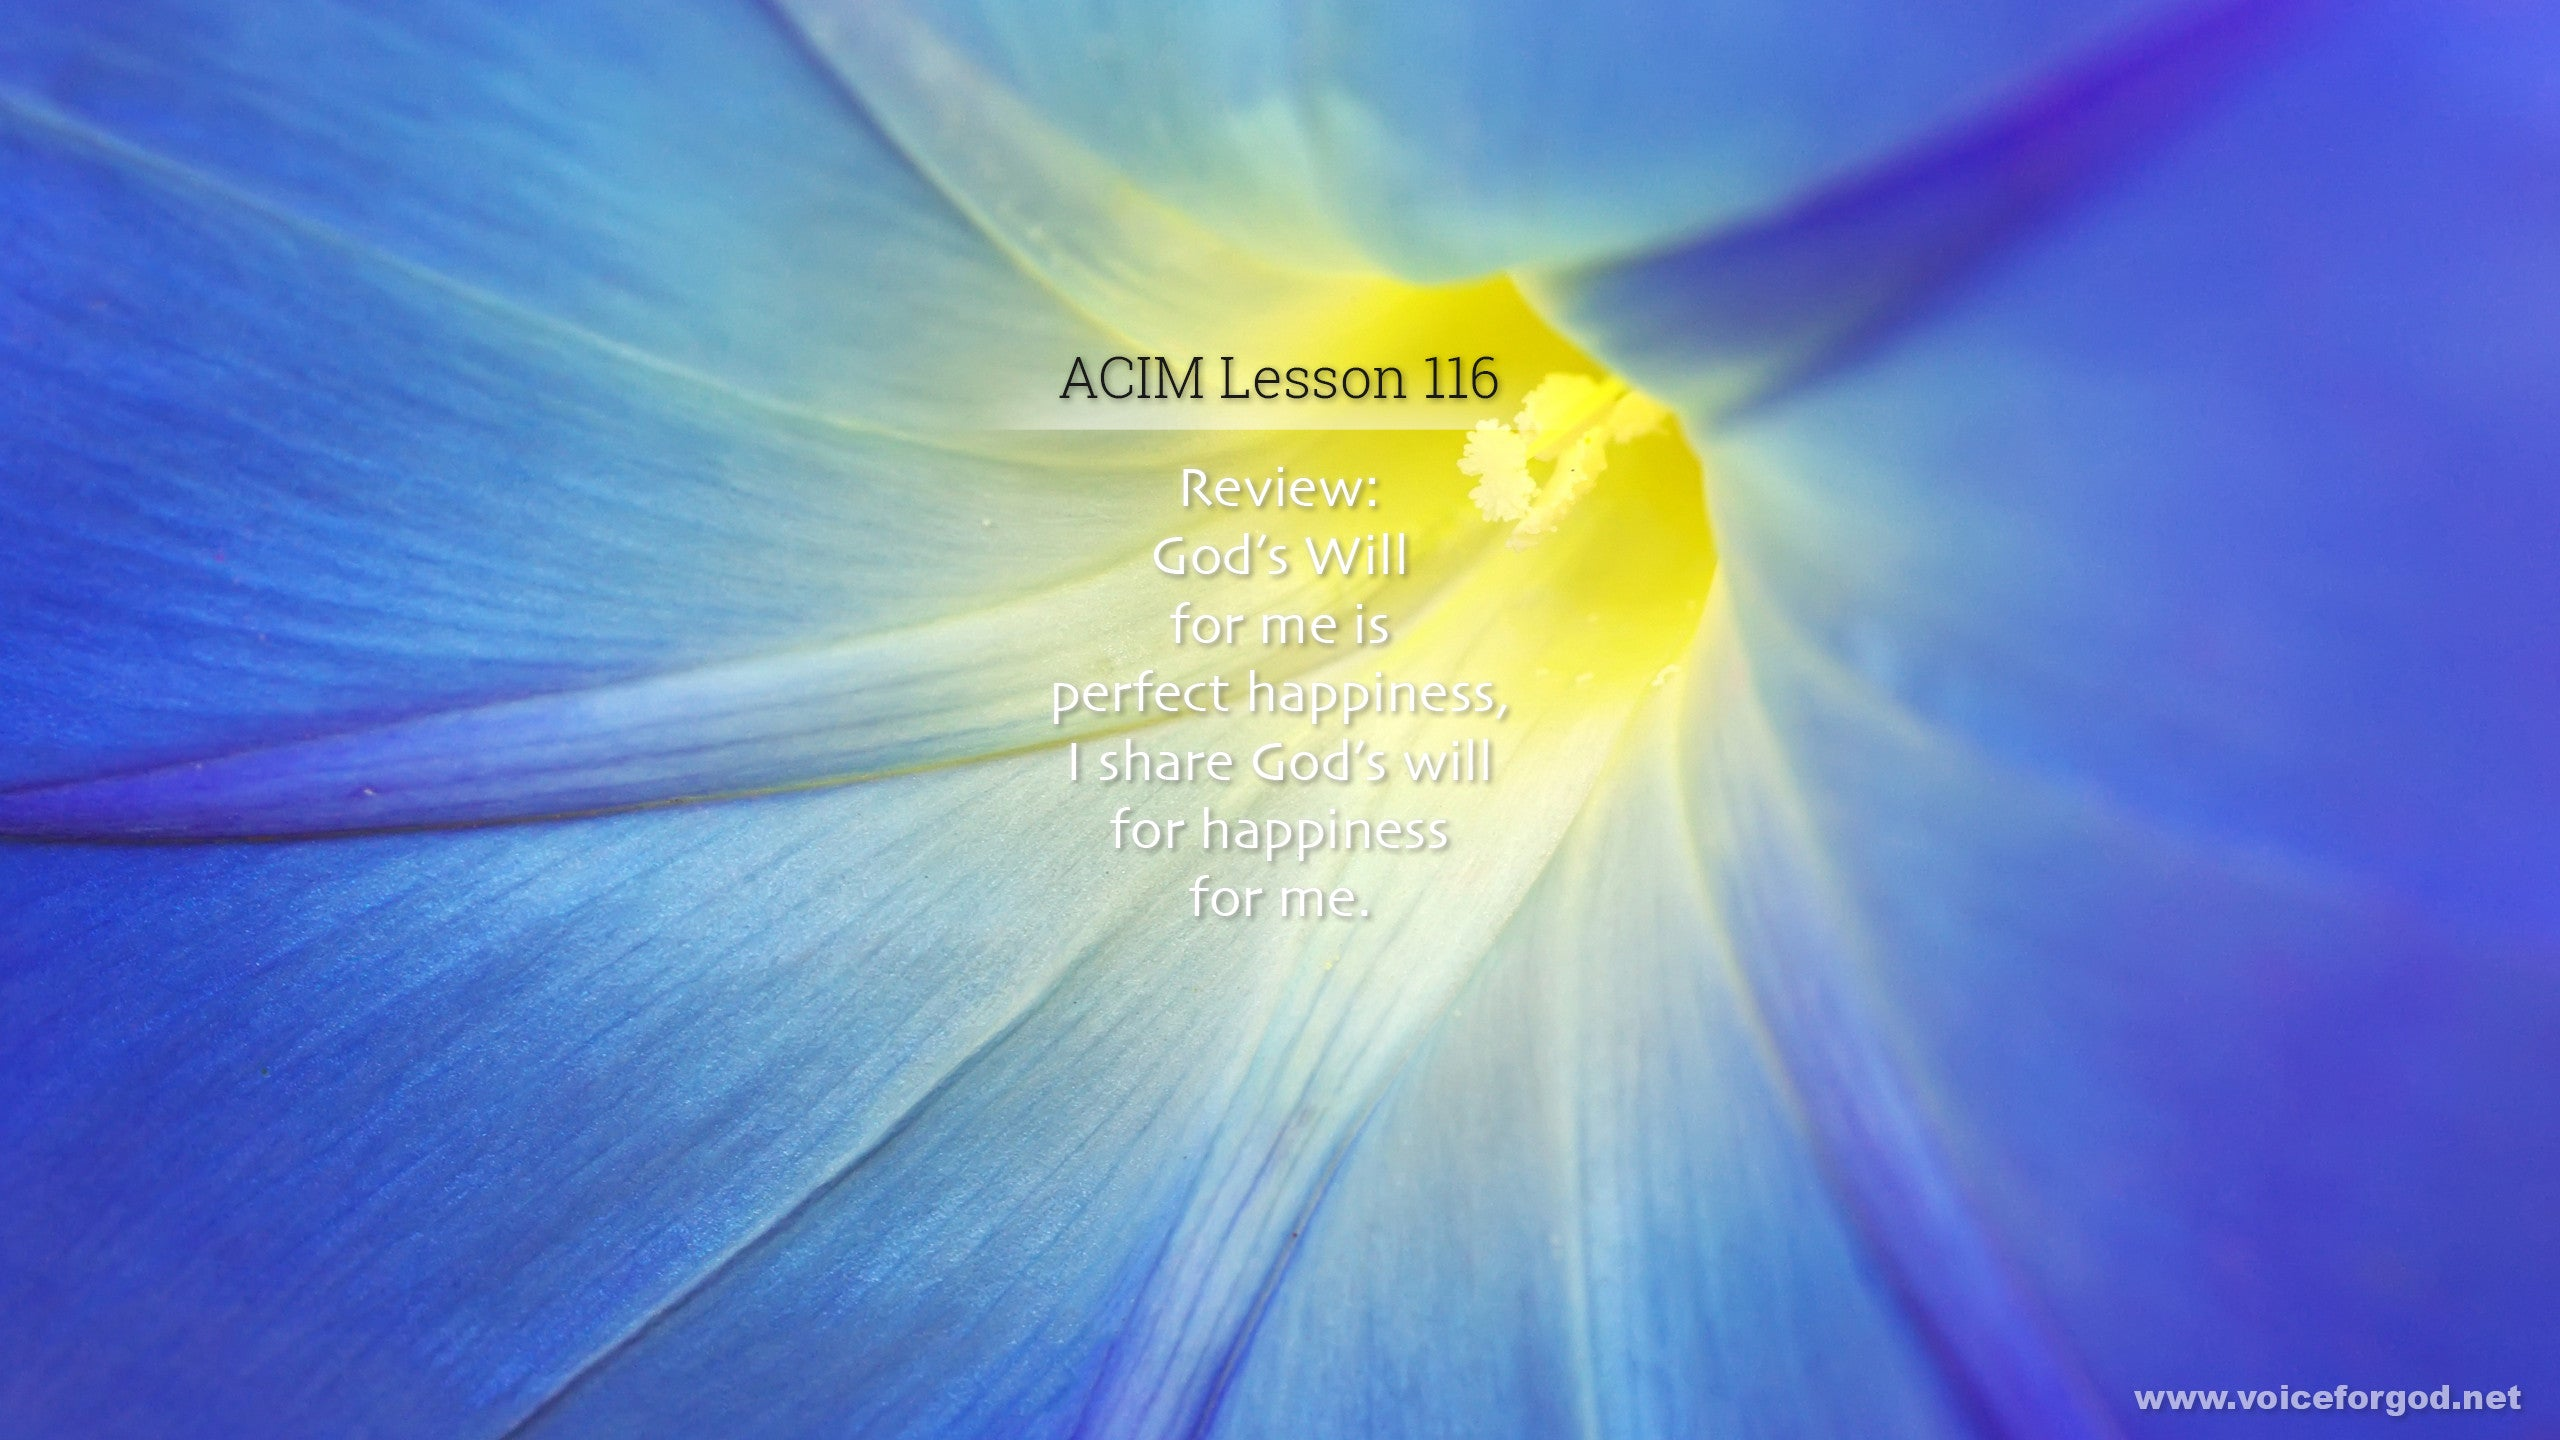 ACIM Lesson 116 - A Course in Miracles Workbook Lesson 116